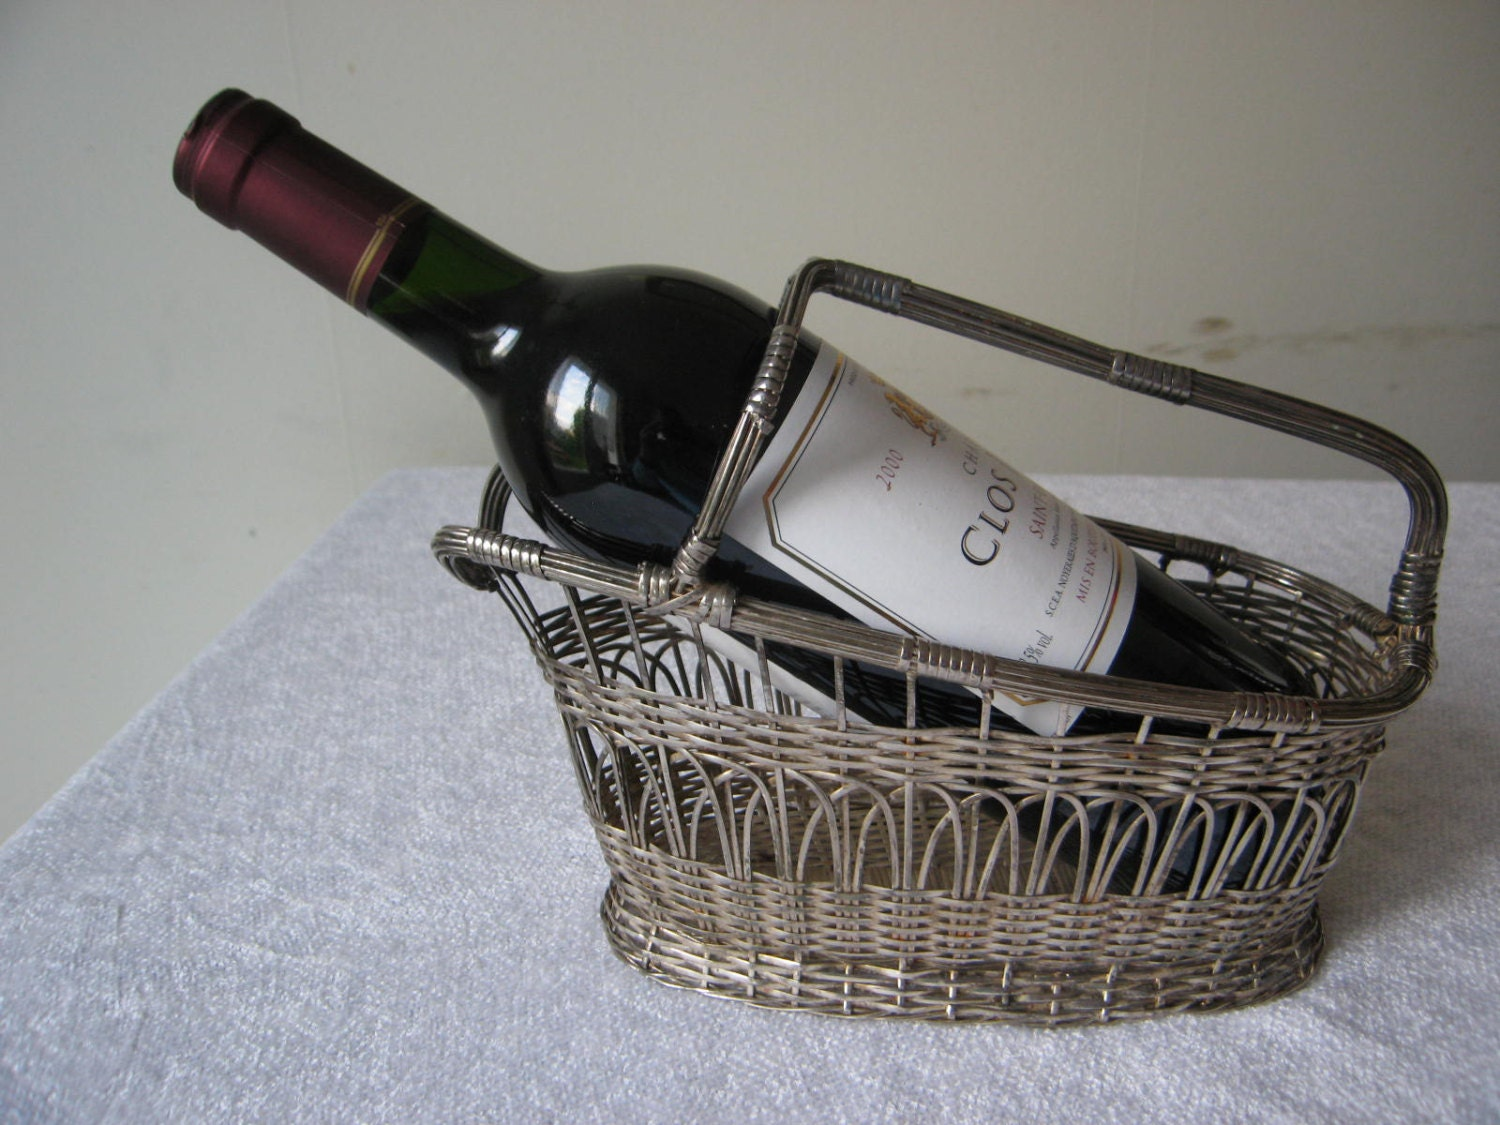 Wine bottle carrier holder vintage french wire basket - Wire wine bottle carrier ...